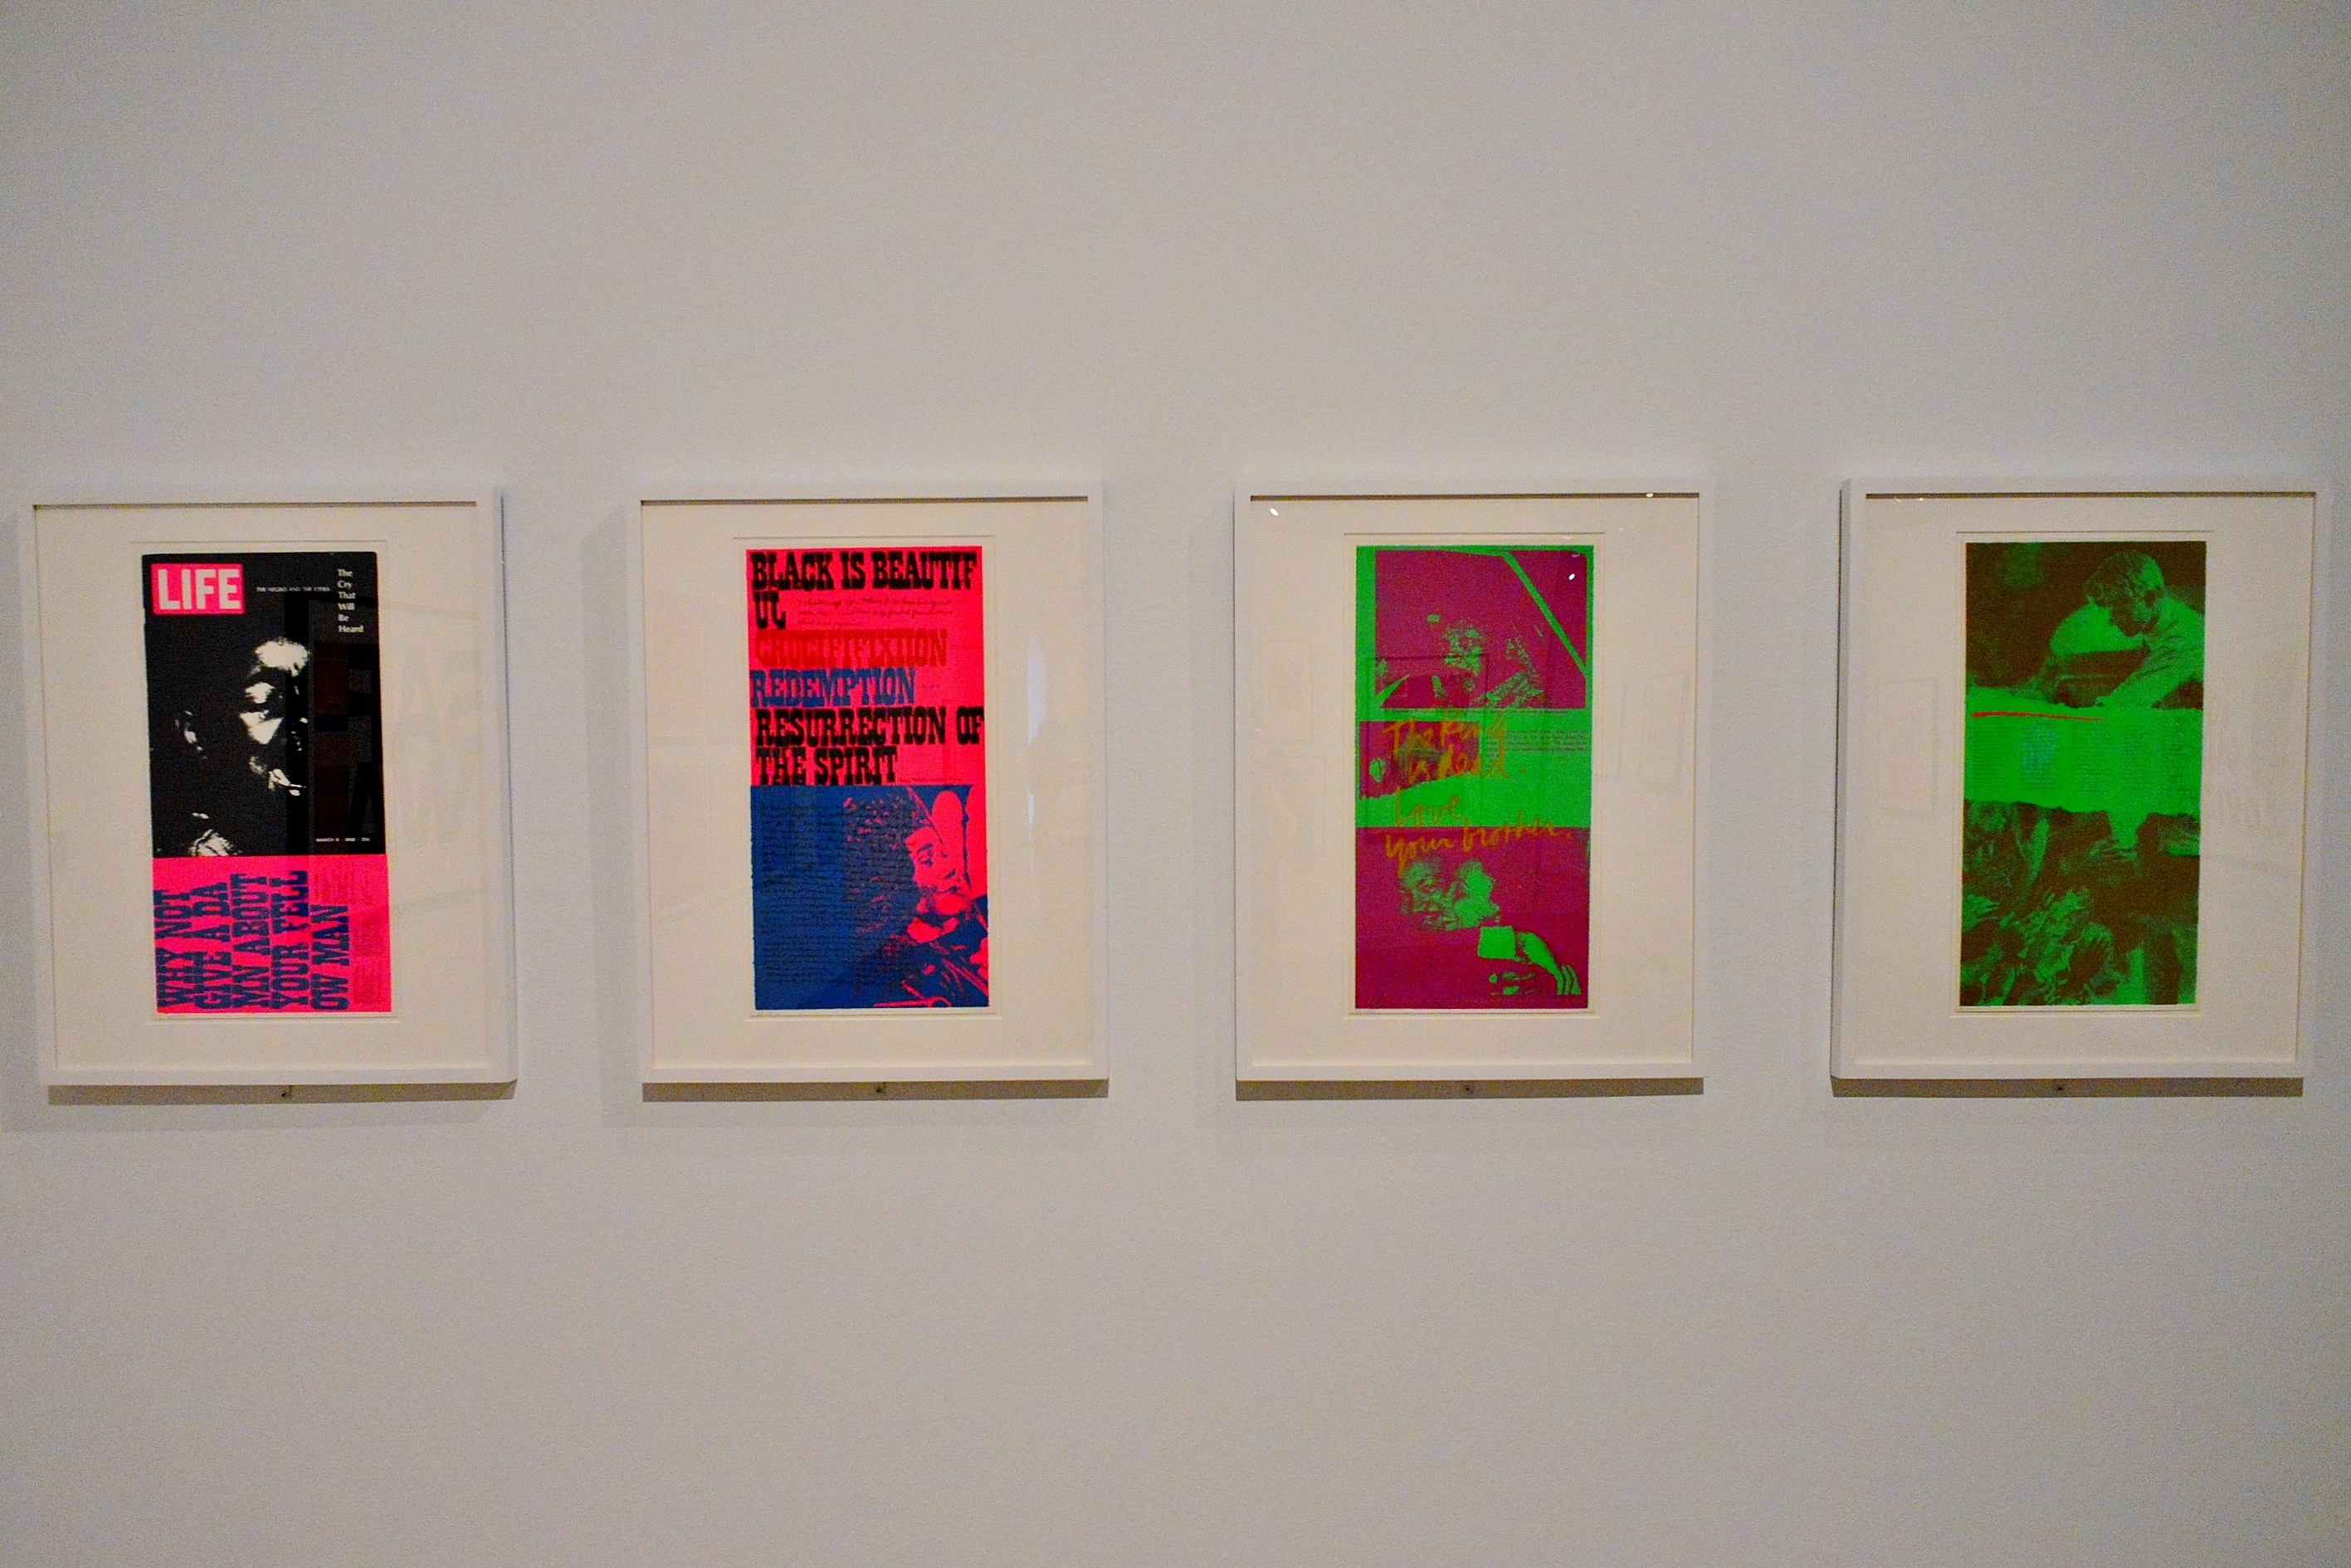 Politically charged works by Corita Kent: (l-r) the cry that will be heard, ifi, love your brother, i'm glad i can feel pain - all created in 1969.